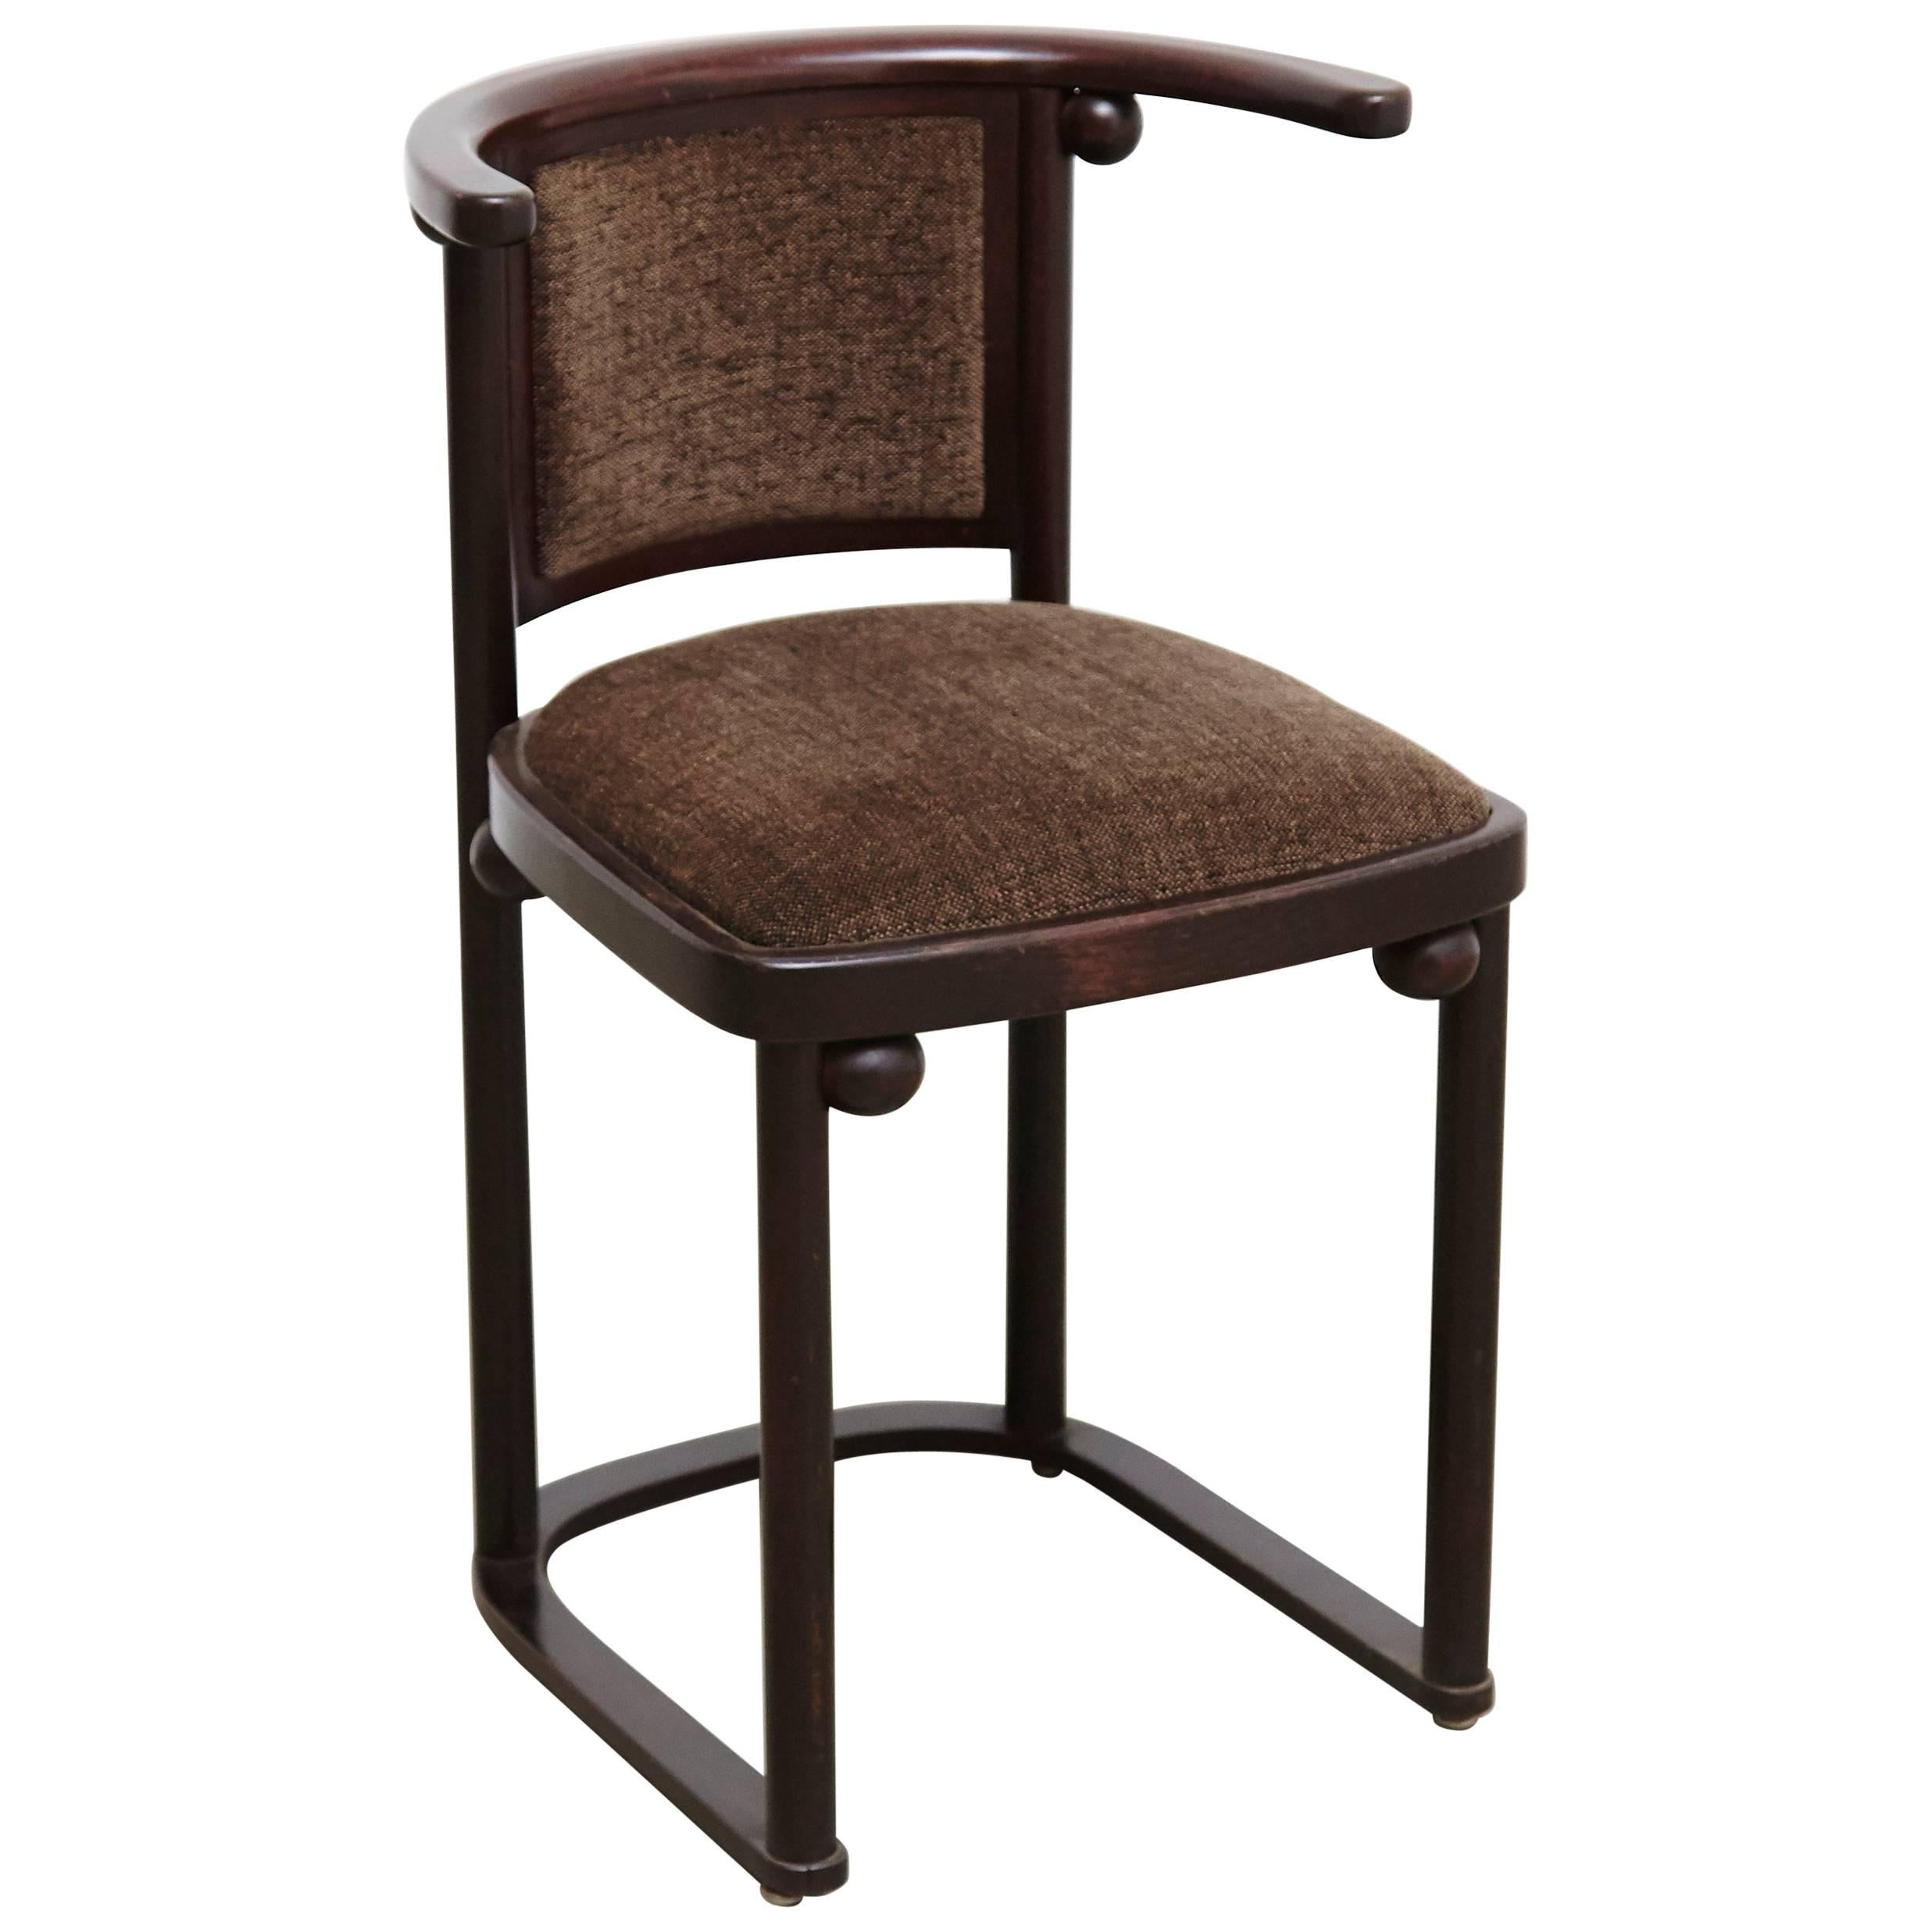 Superieur Josef Hoffmann Cabaret Fledermaus Chair For Sale